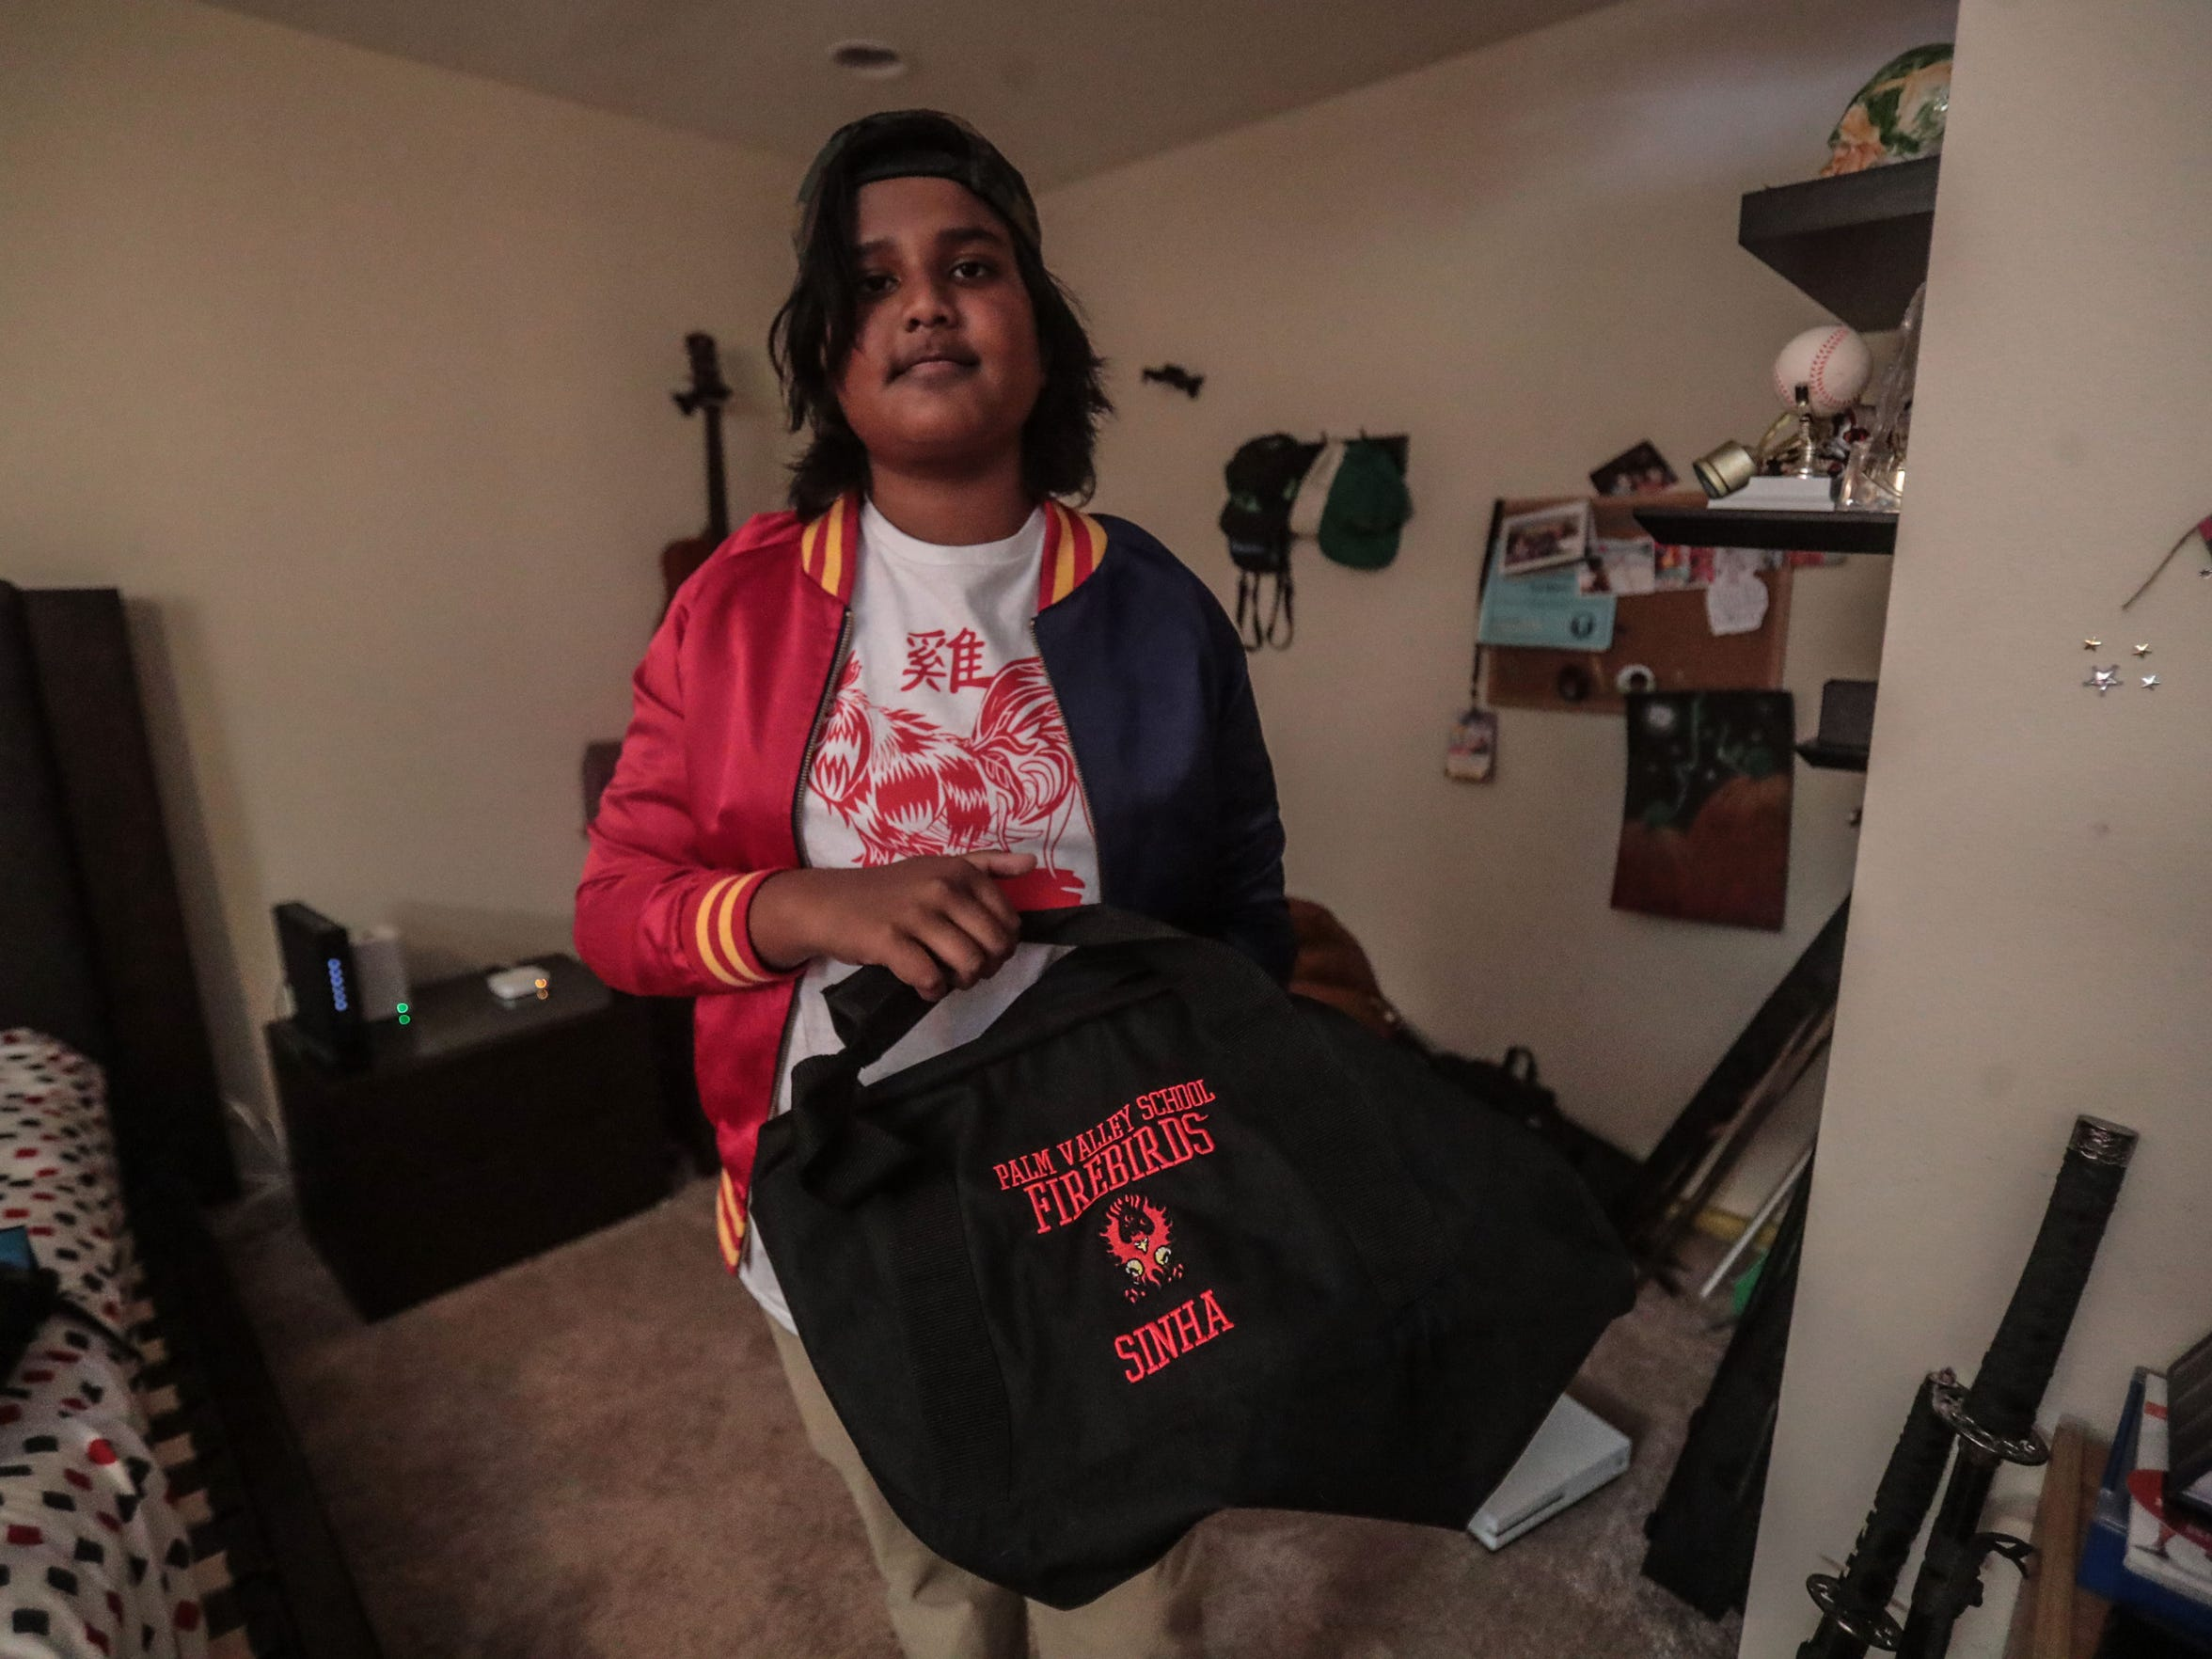 Sid Sinha shows is Palm Valley private school bag at his home in Thousand Palms on Tuesday, May 1, 2018.